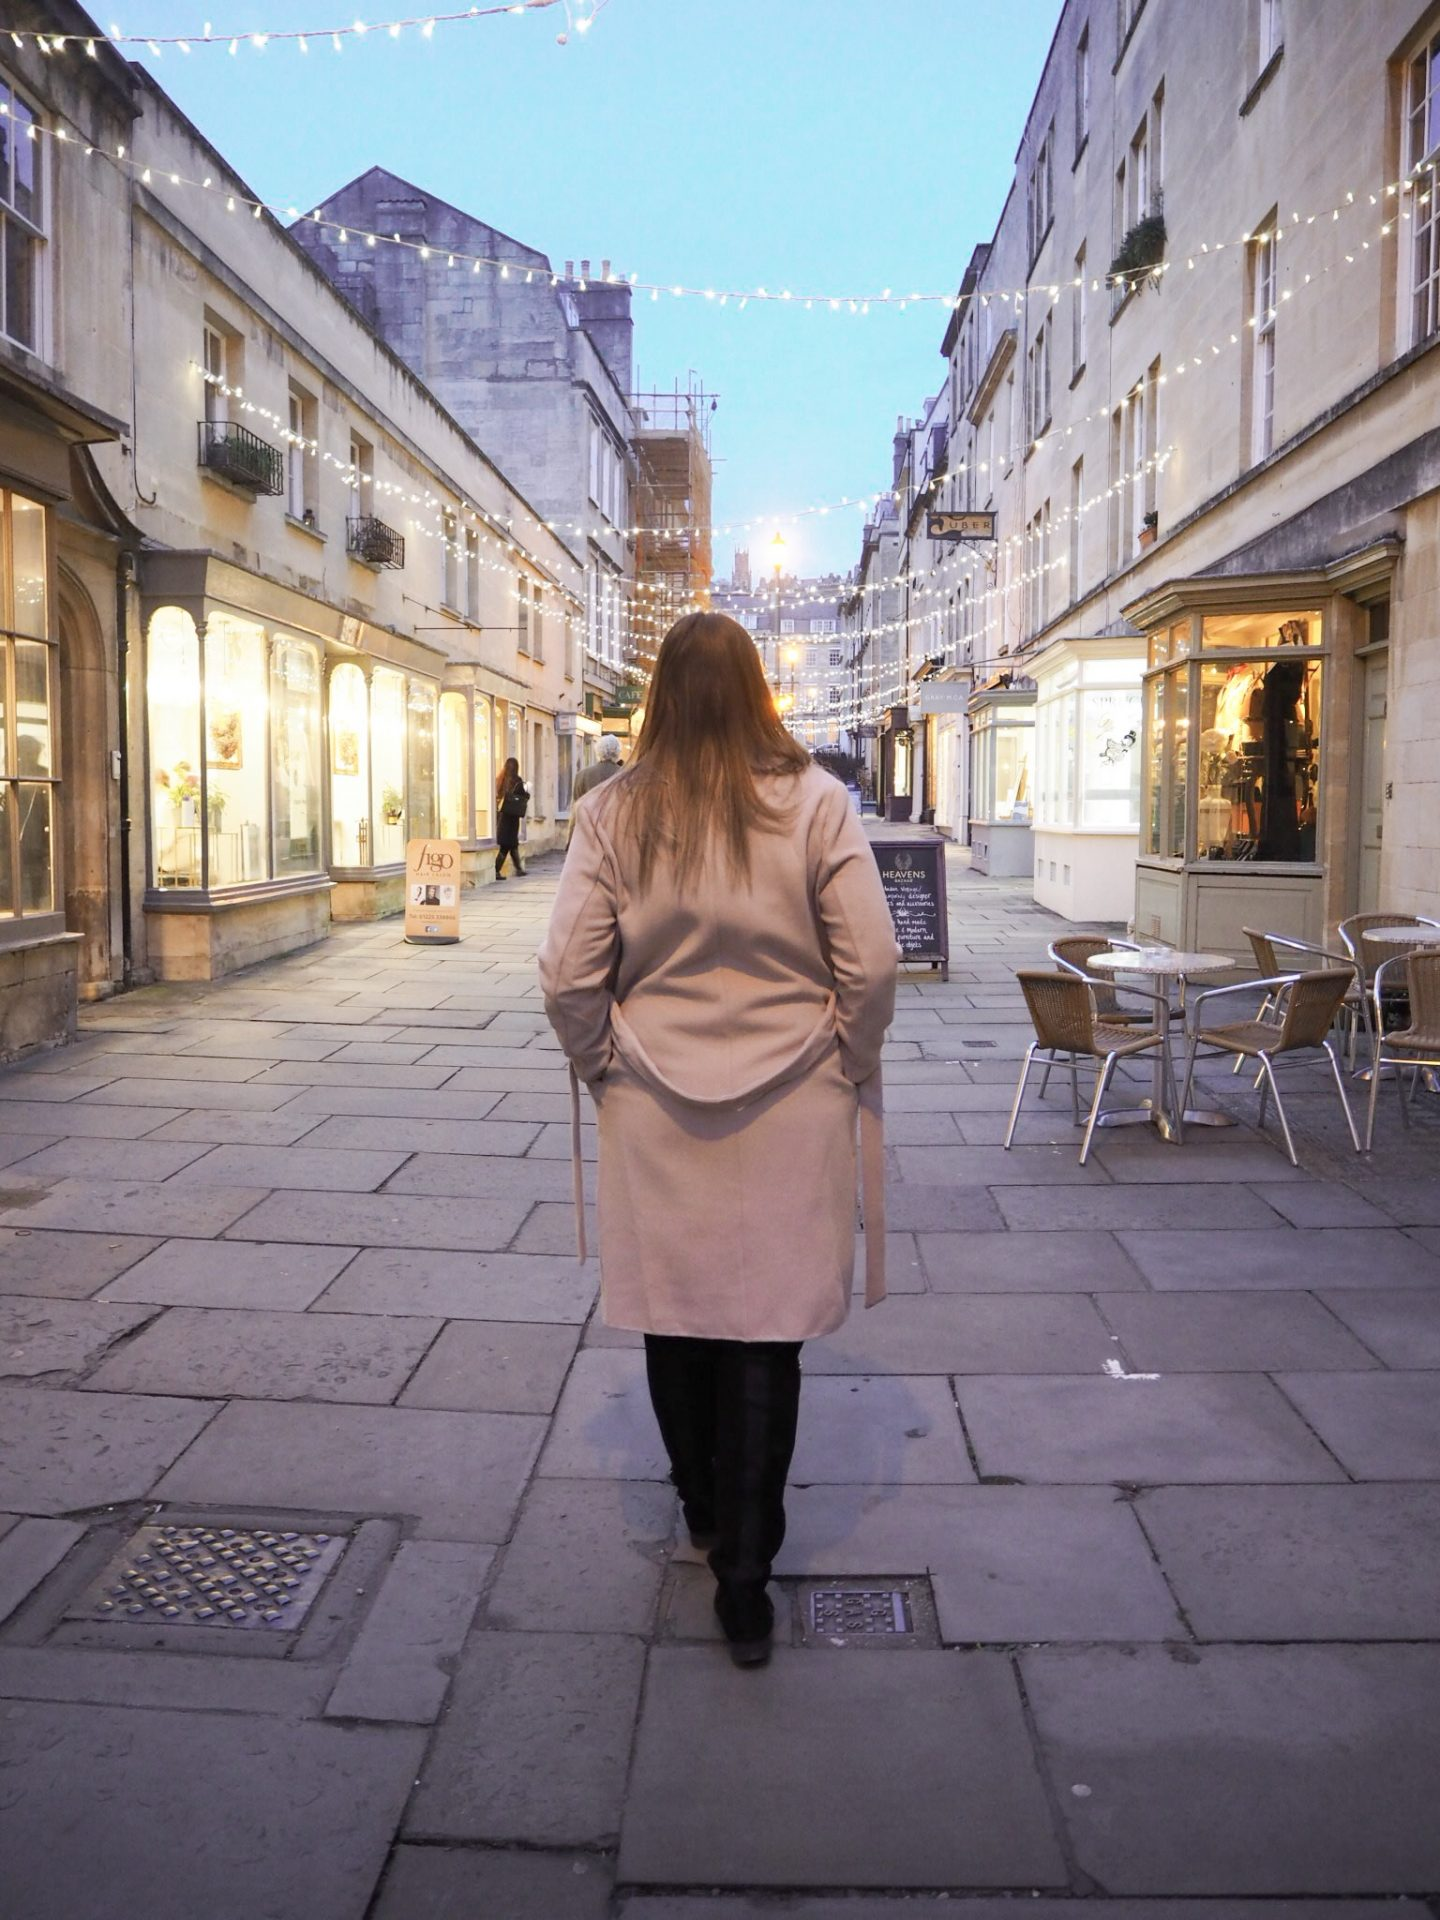 Bath, UK in the evening